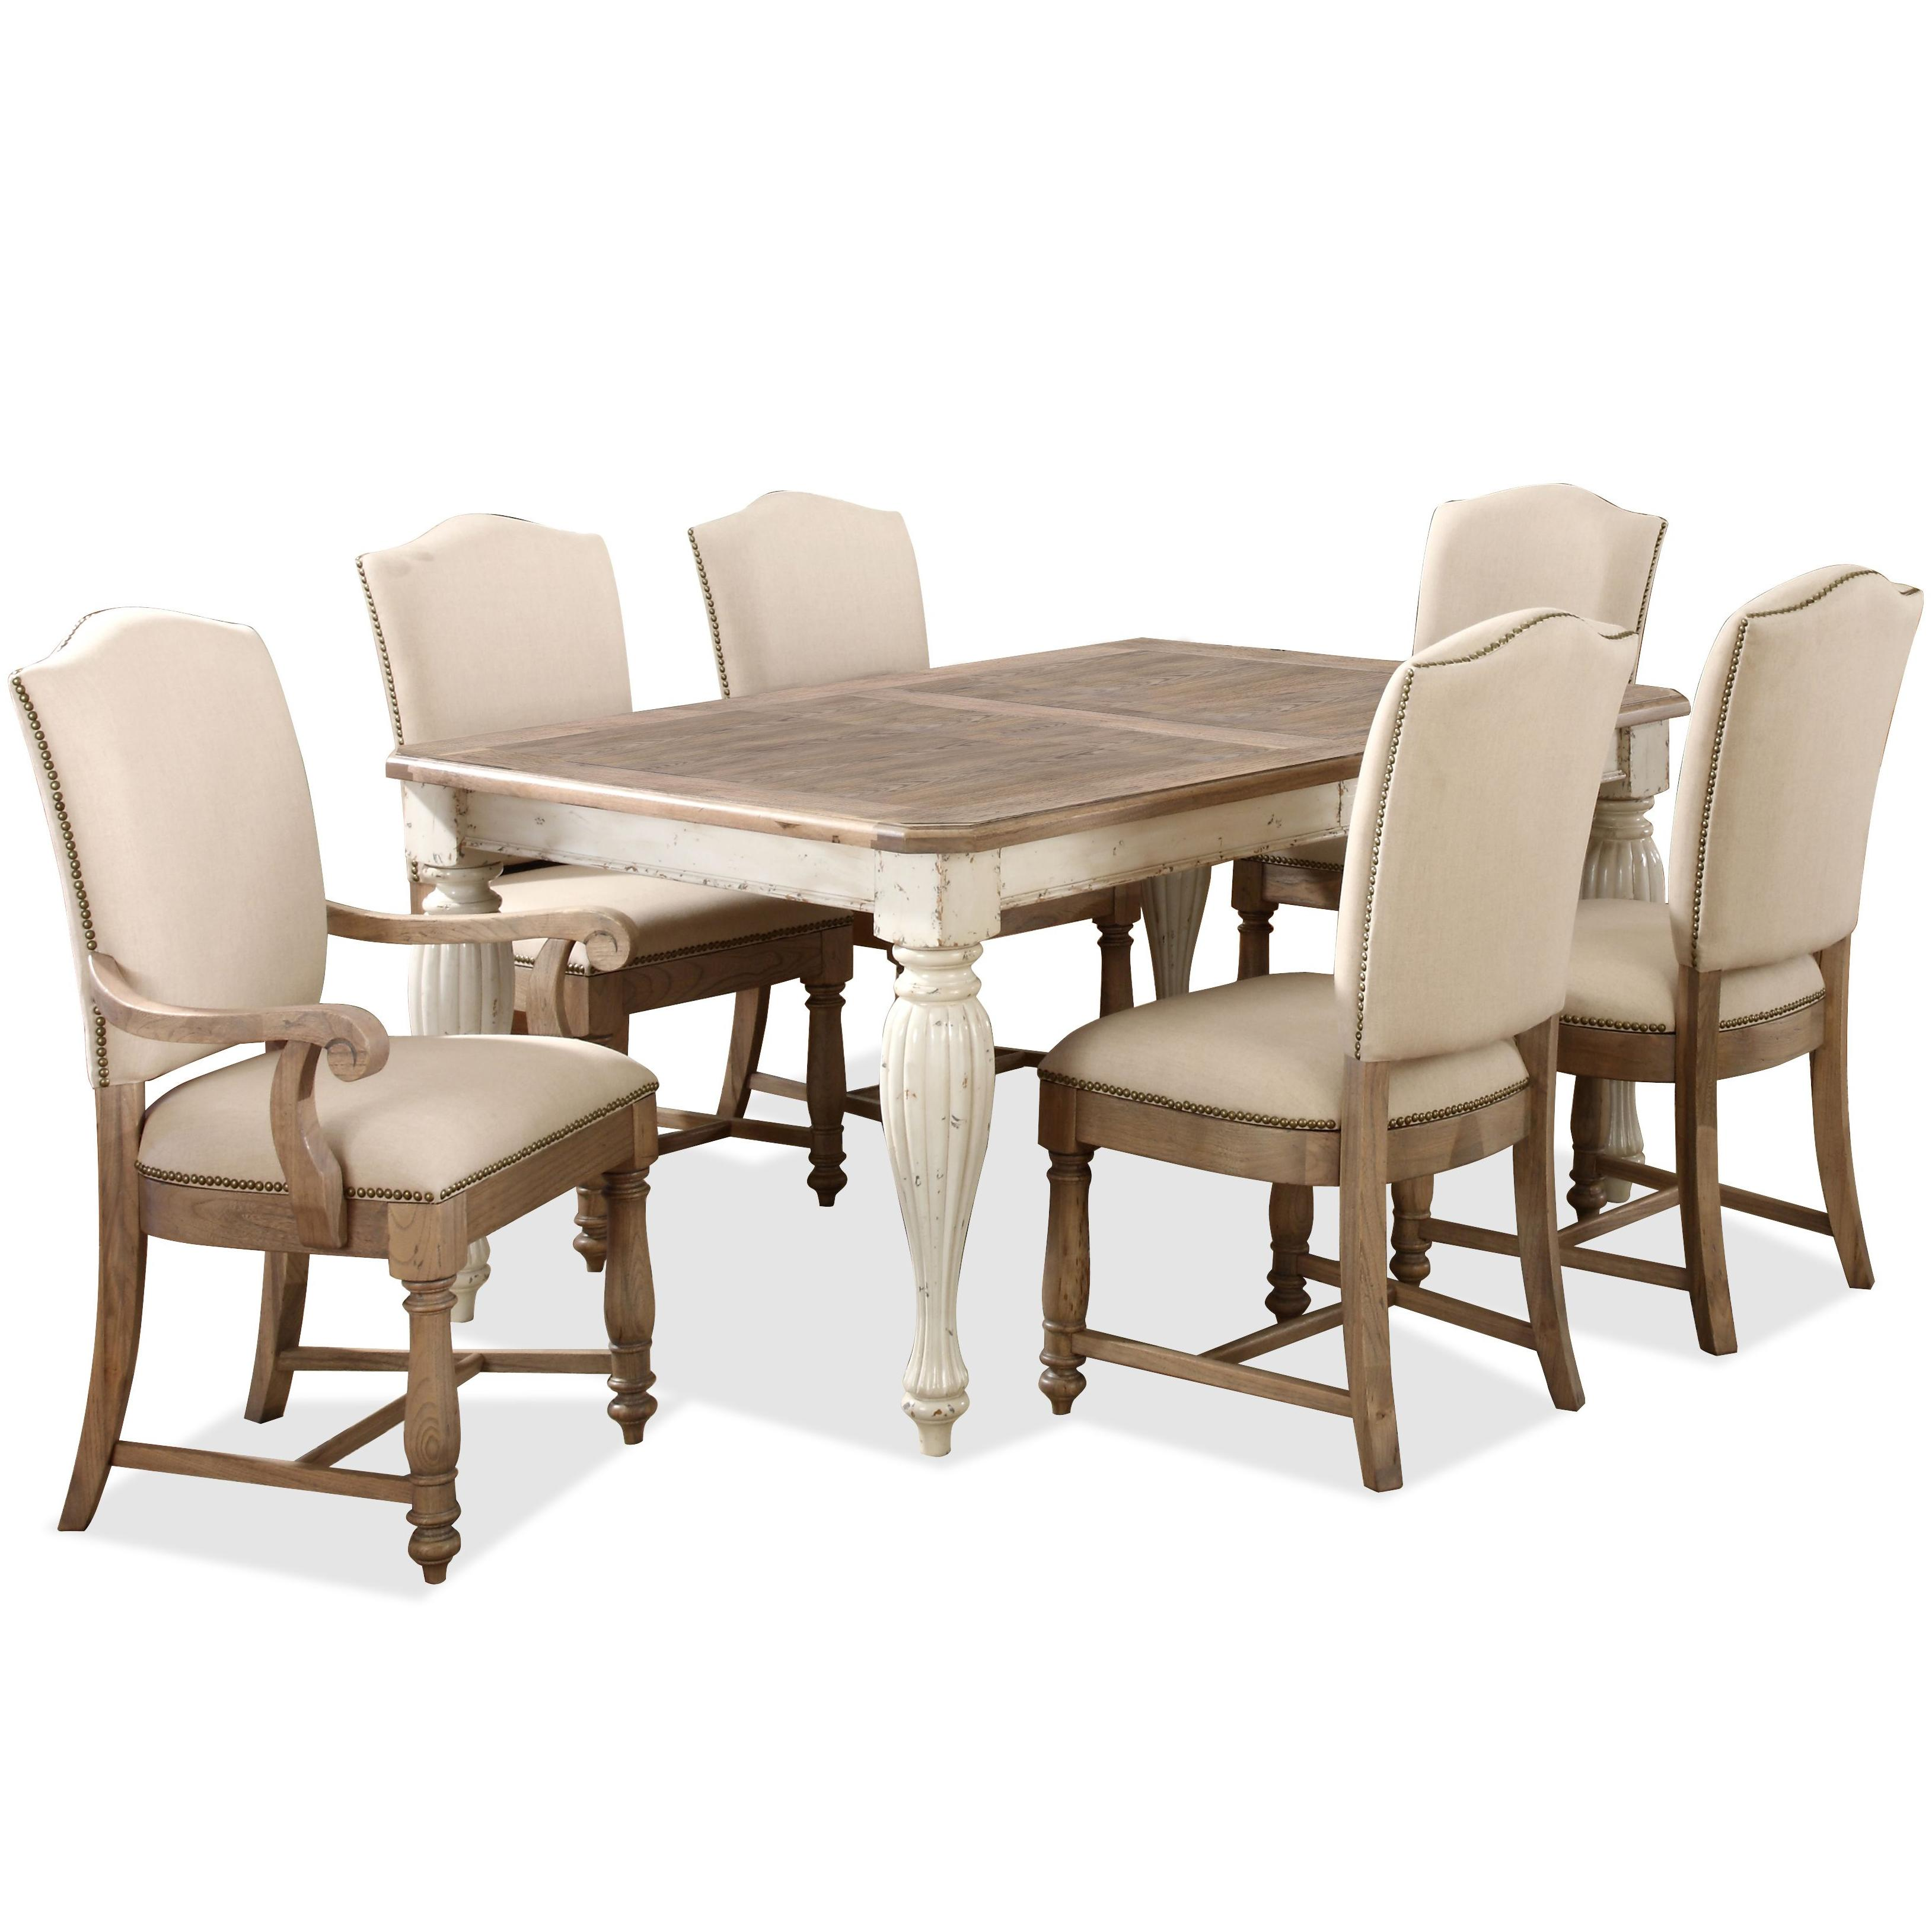 rectangular leg dining table with 18 leaf by riverside furniture wolf and gardiner wolf furniture. Black Bedroom Furniture Sets. Home Design Ideas